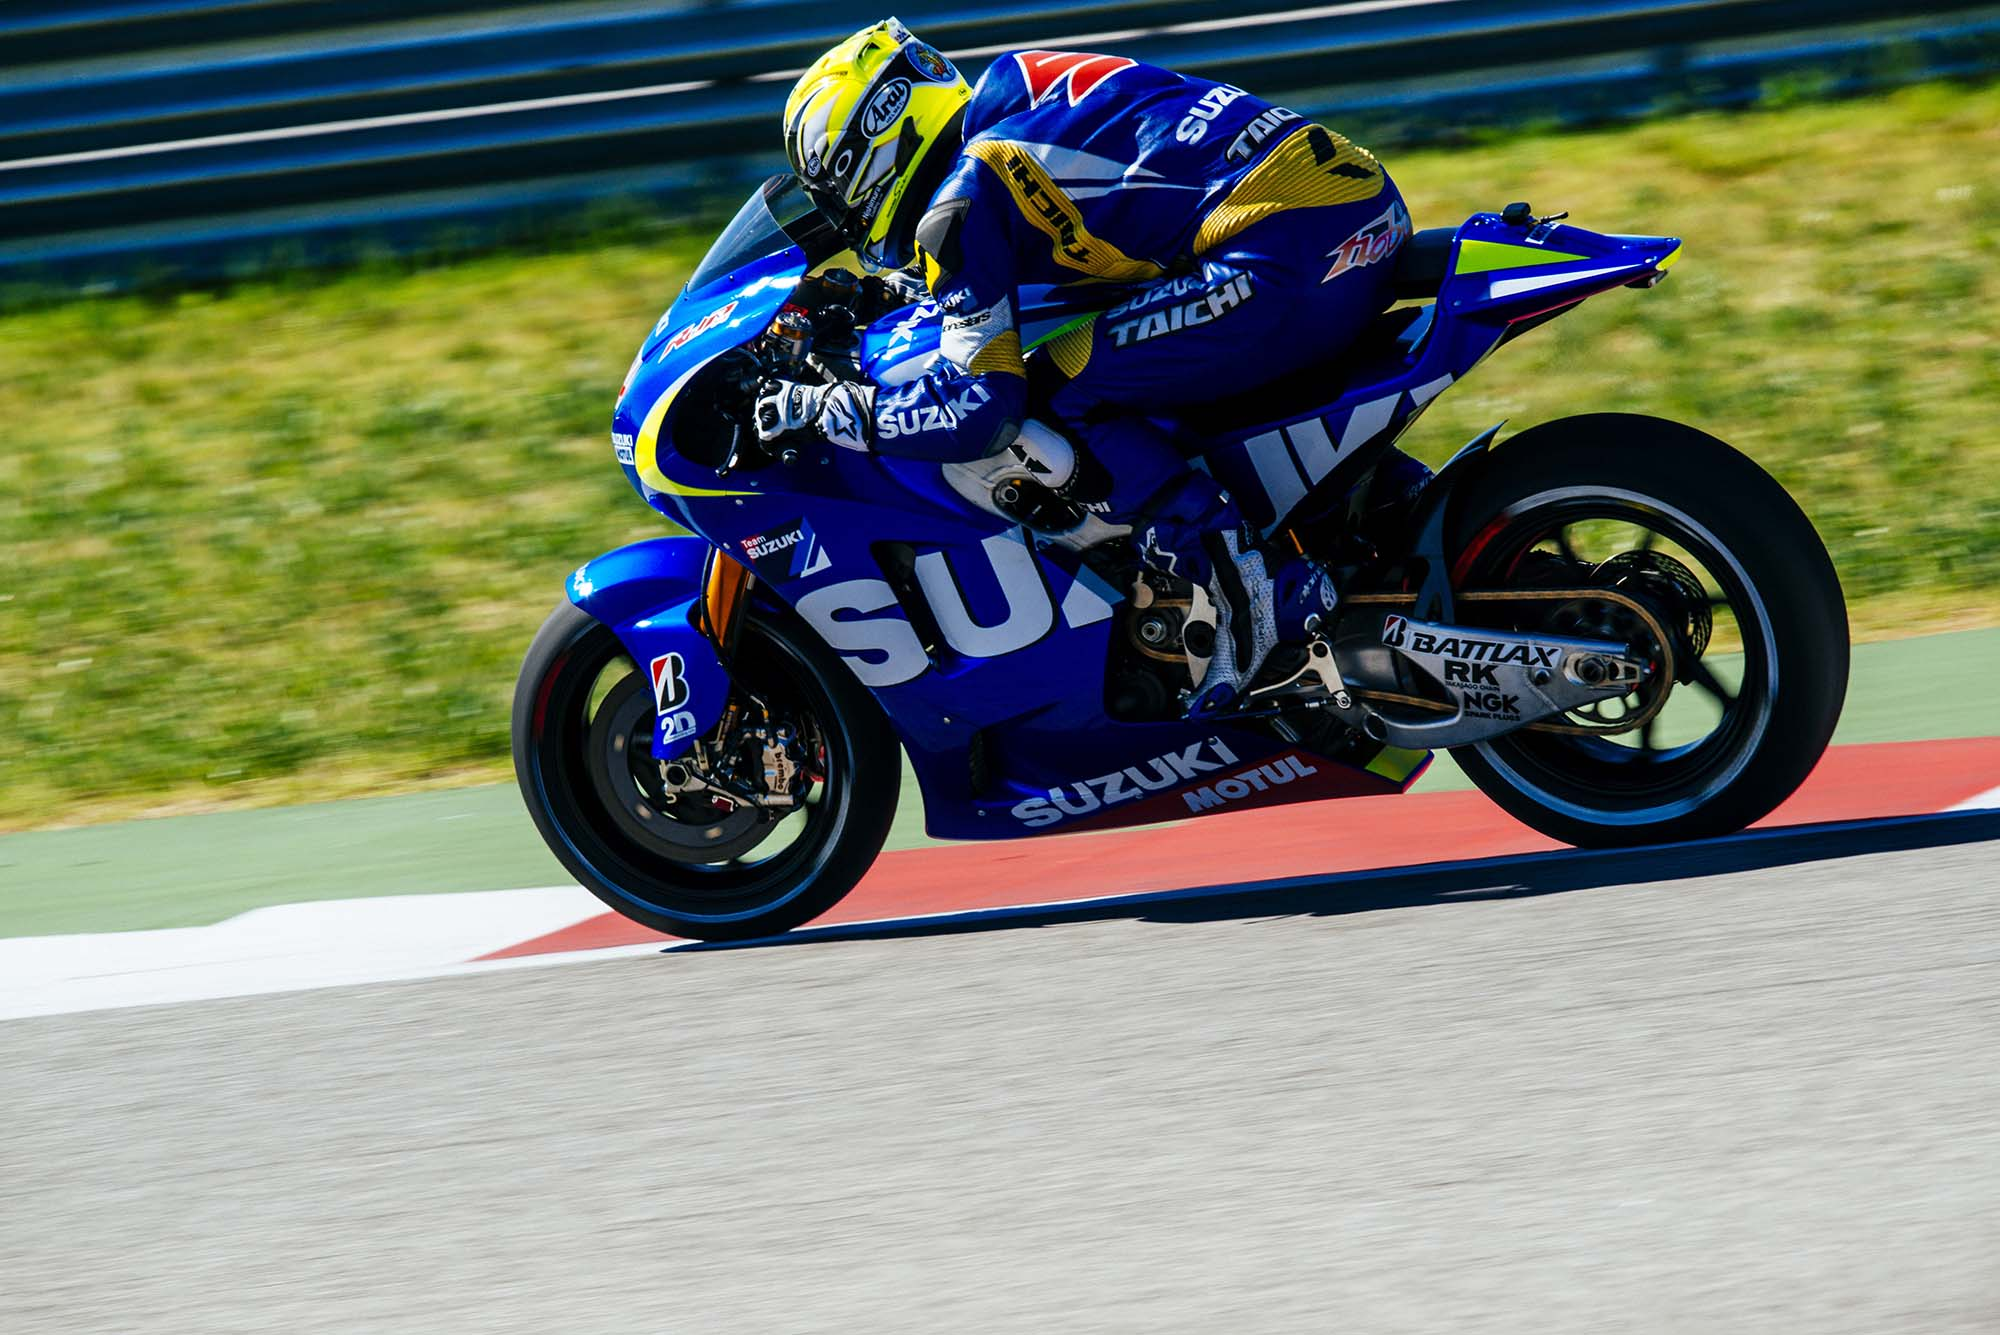 Kevin Schwantz Tests Suzuki XRH-1 MotoGP Bike at COTA, While Randy De Puniet Matches Pace of ...